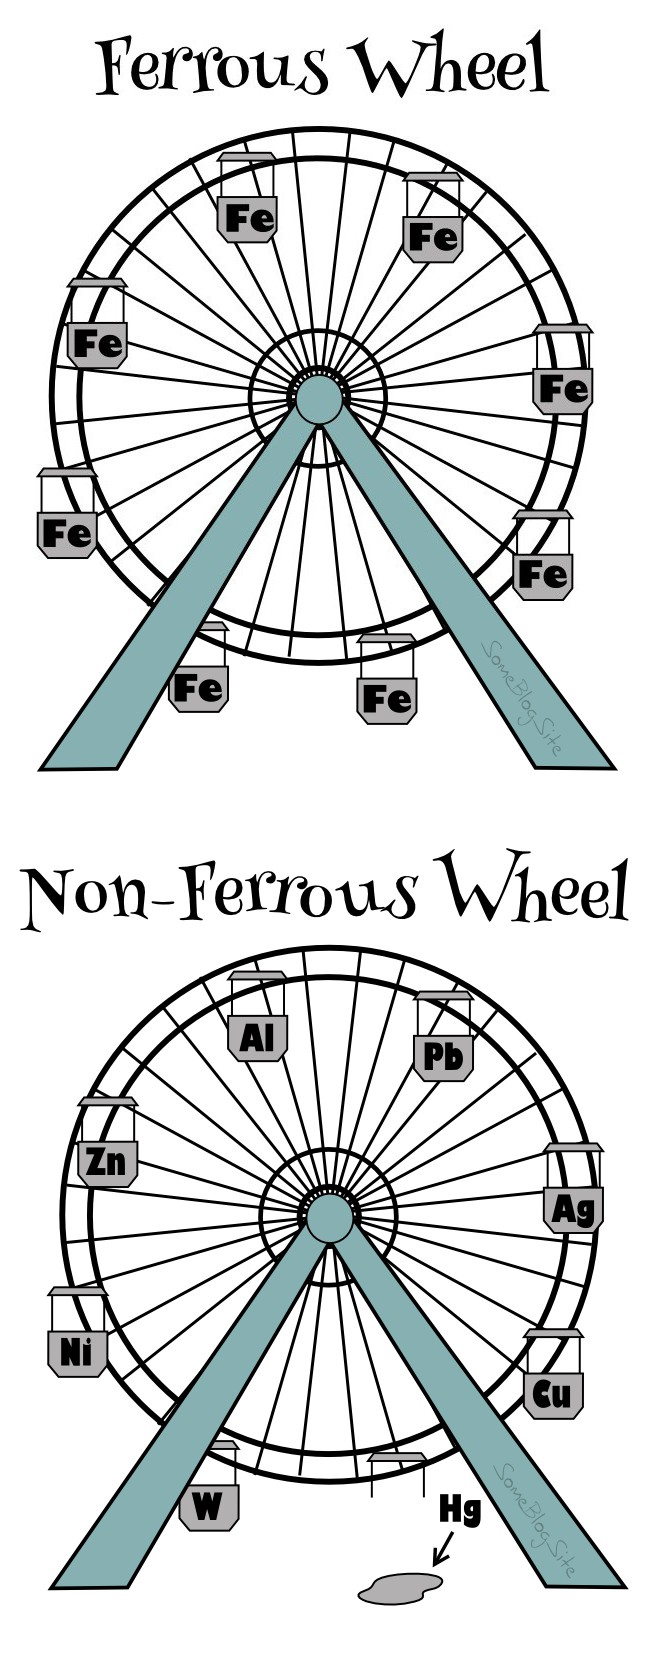 image of a ferrous wheel - a Ferris wheel made of iron (Fe) and a non-ferrous wheel - a Ferris wheel made of aluminum (Al), copper (Cu), lead (Pb), nickel (Ni), zinc (Zn), tungsten (W), mercury (Hg), and silver (Ag).